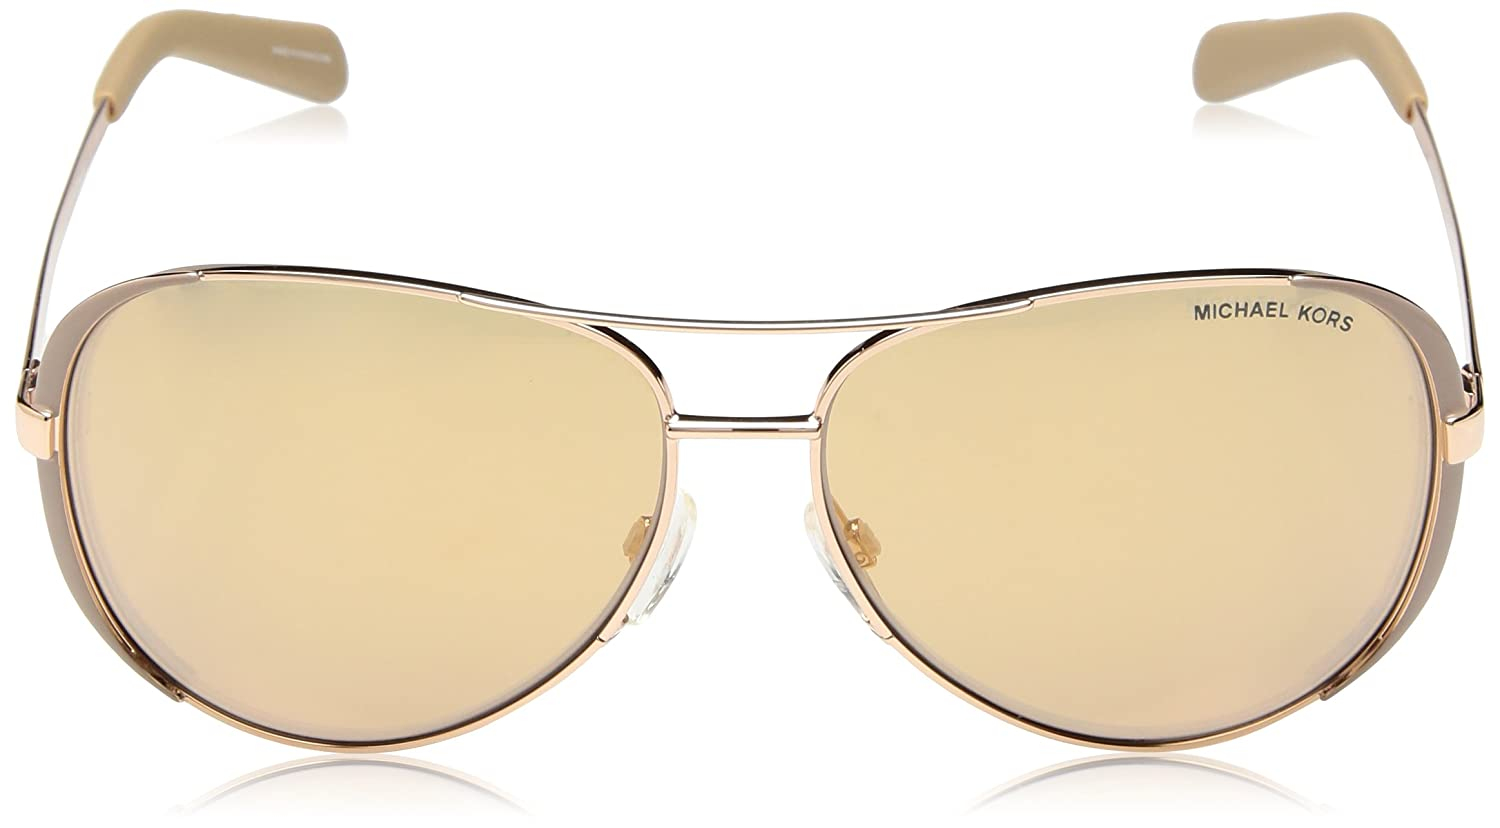 f06a1da0fa07 Amazon.com: Michael Kors MK5004 Chelsea Sunglasses, Gold: Michael Kors:  Shoes